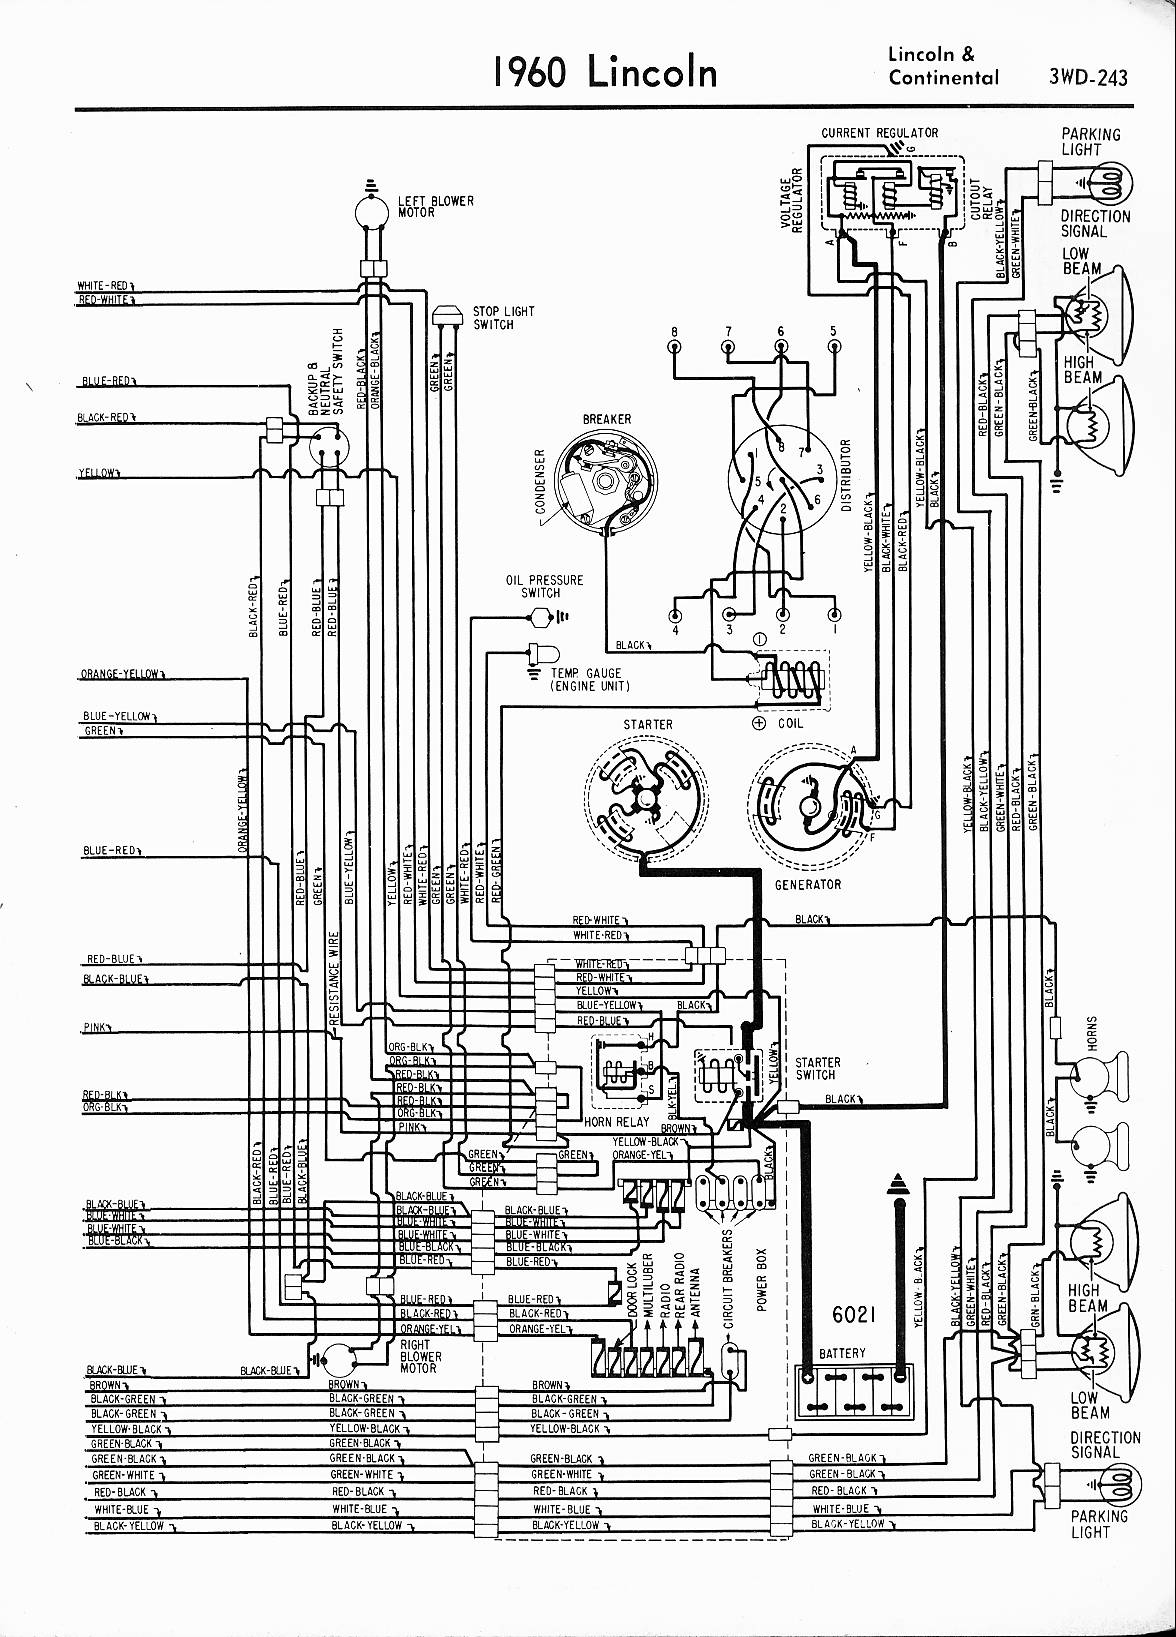 1960 Mark V Wiring Diagram 26 Images Shopsmith Mwirelin Lin57 Z3wd 243z 006 Lincoln Diagrams 1957 1965 Basic Electrical At